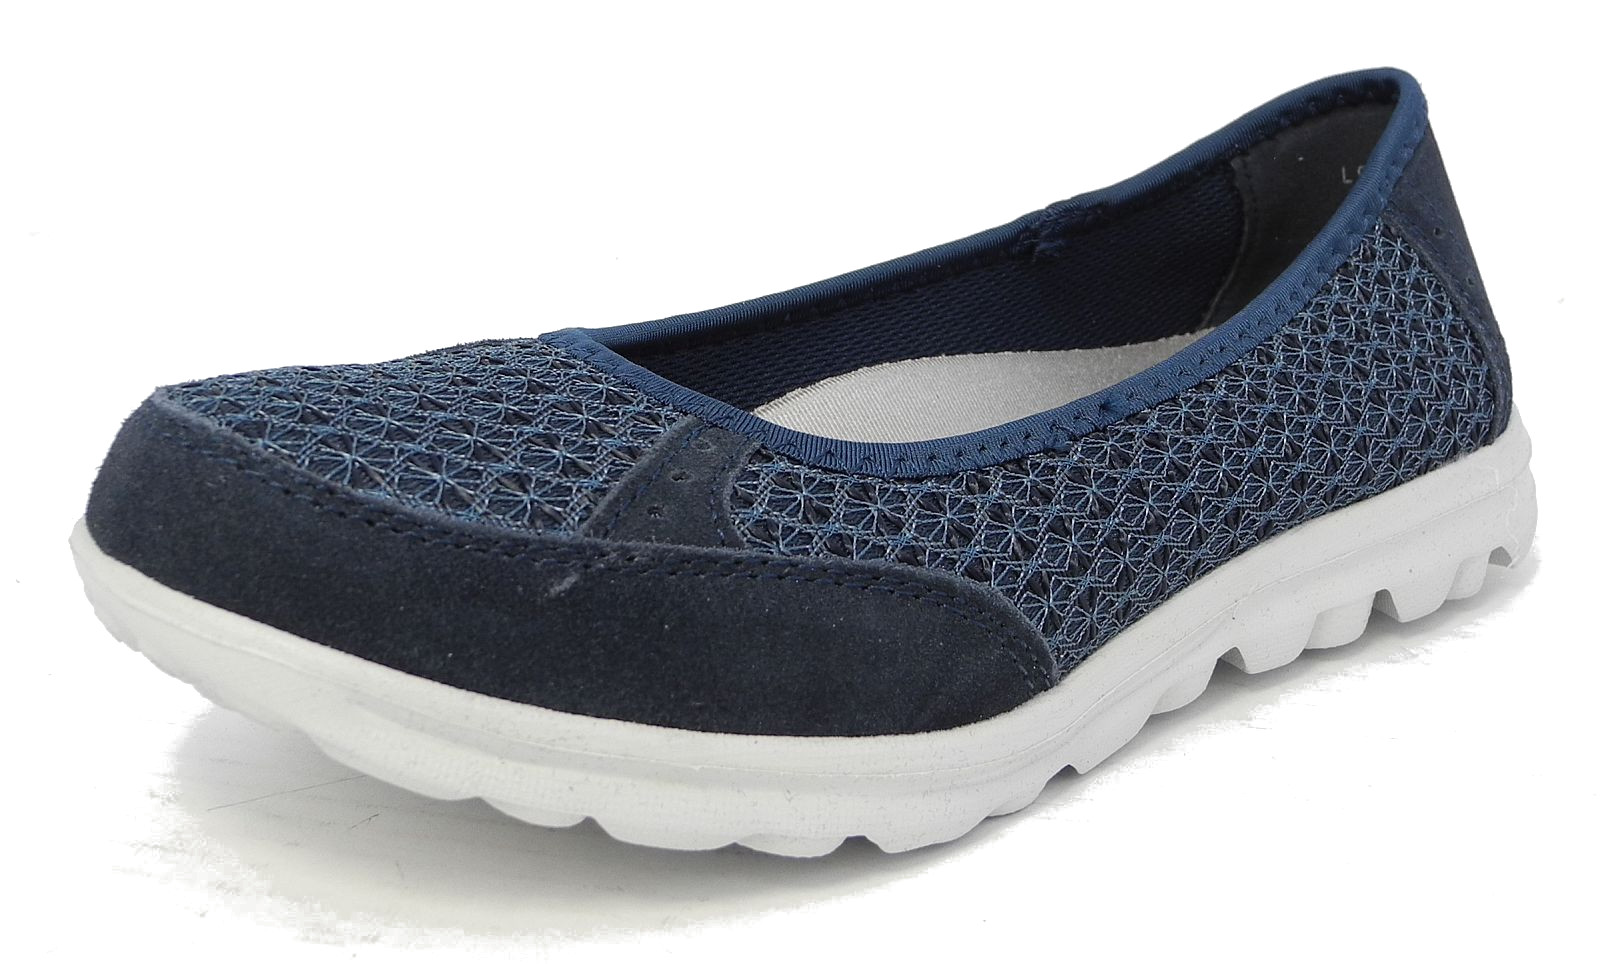 Innovative  Check Our Updated Tips And Ideas For The Best Shoes With Arch Support